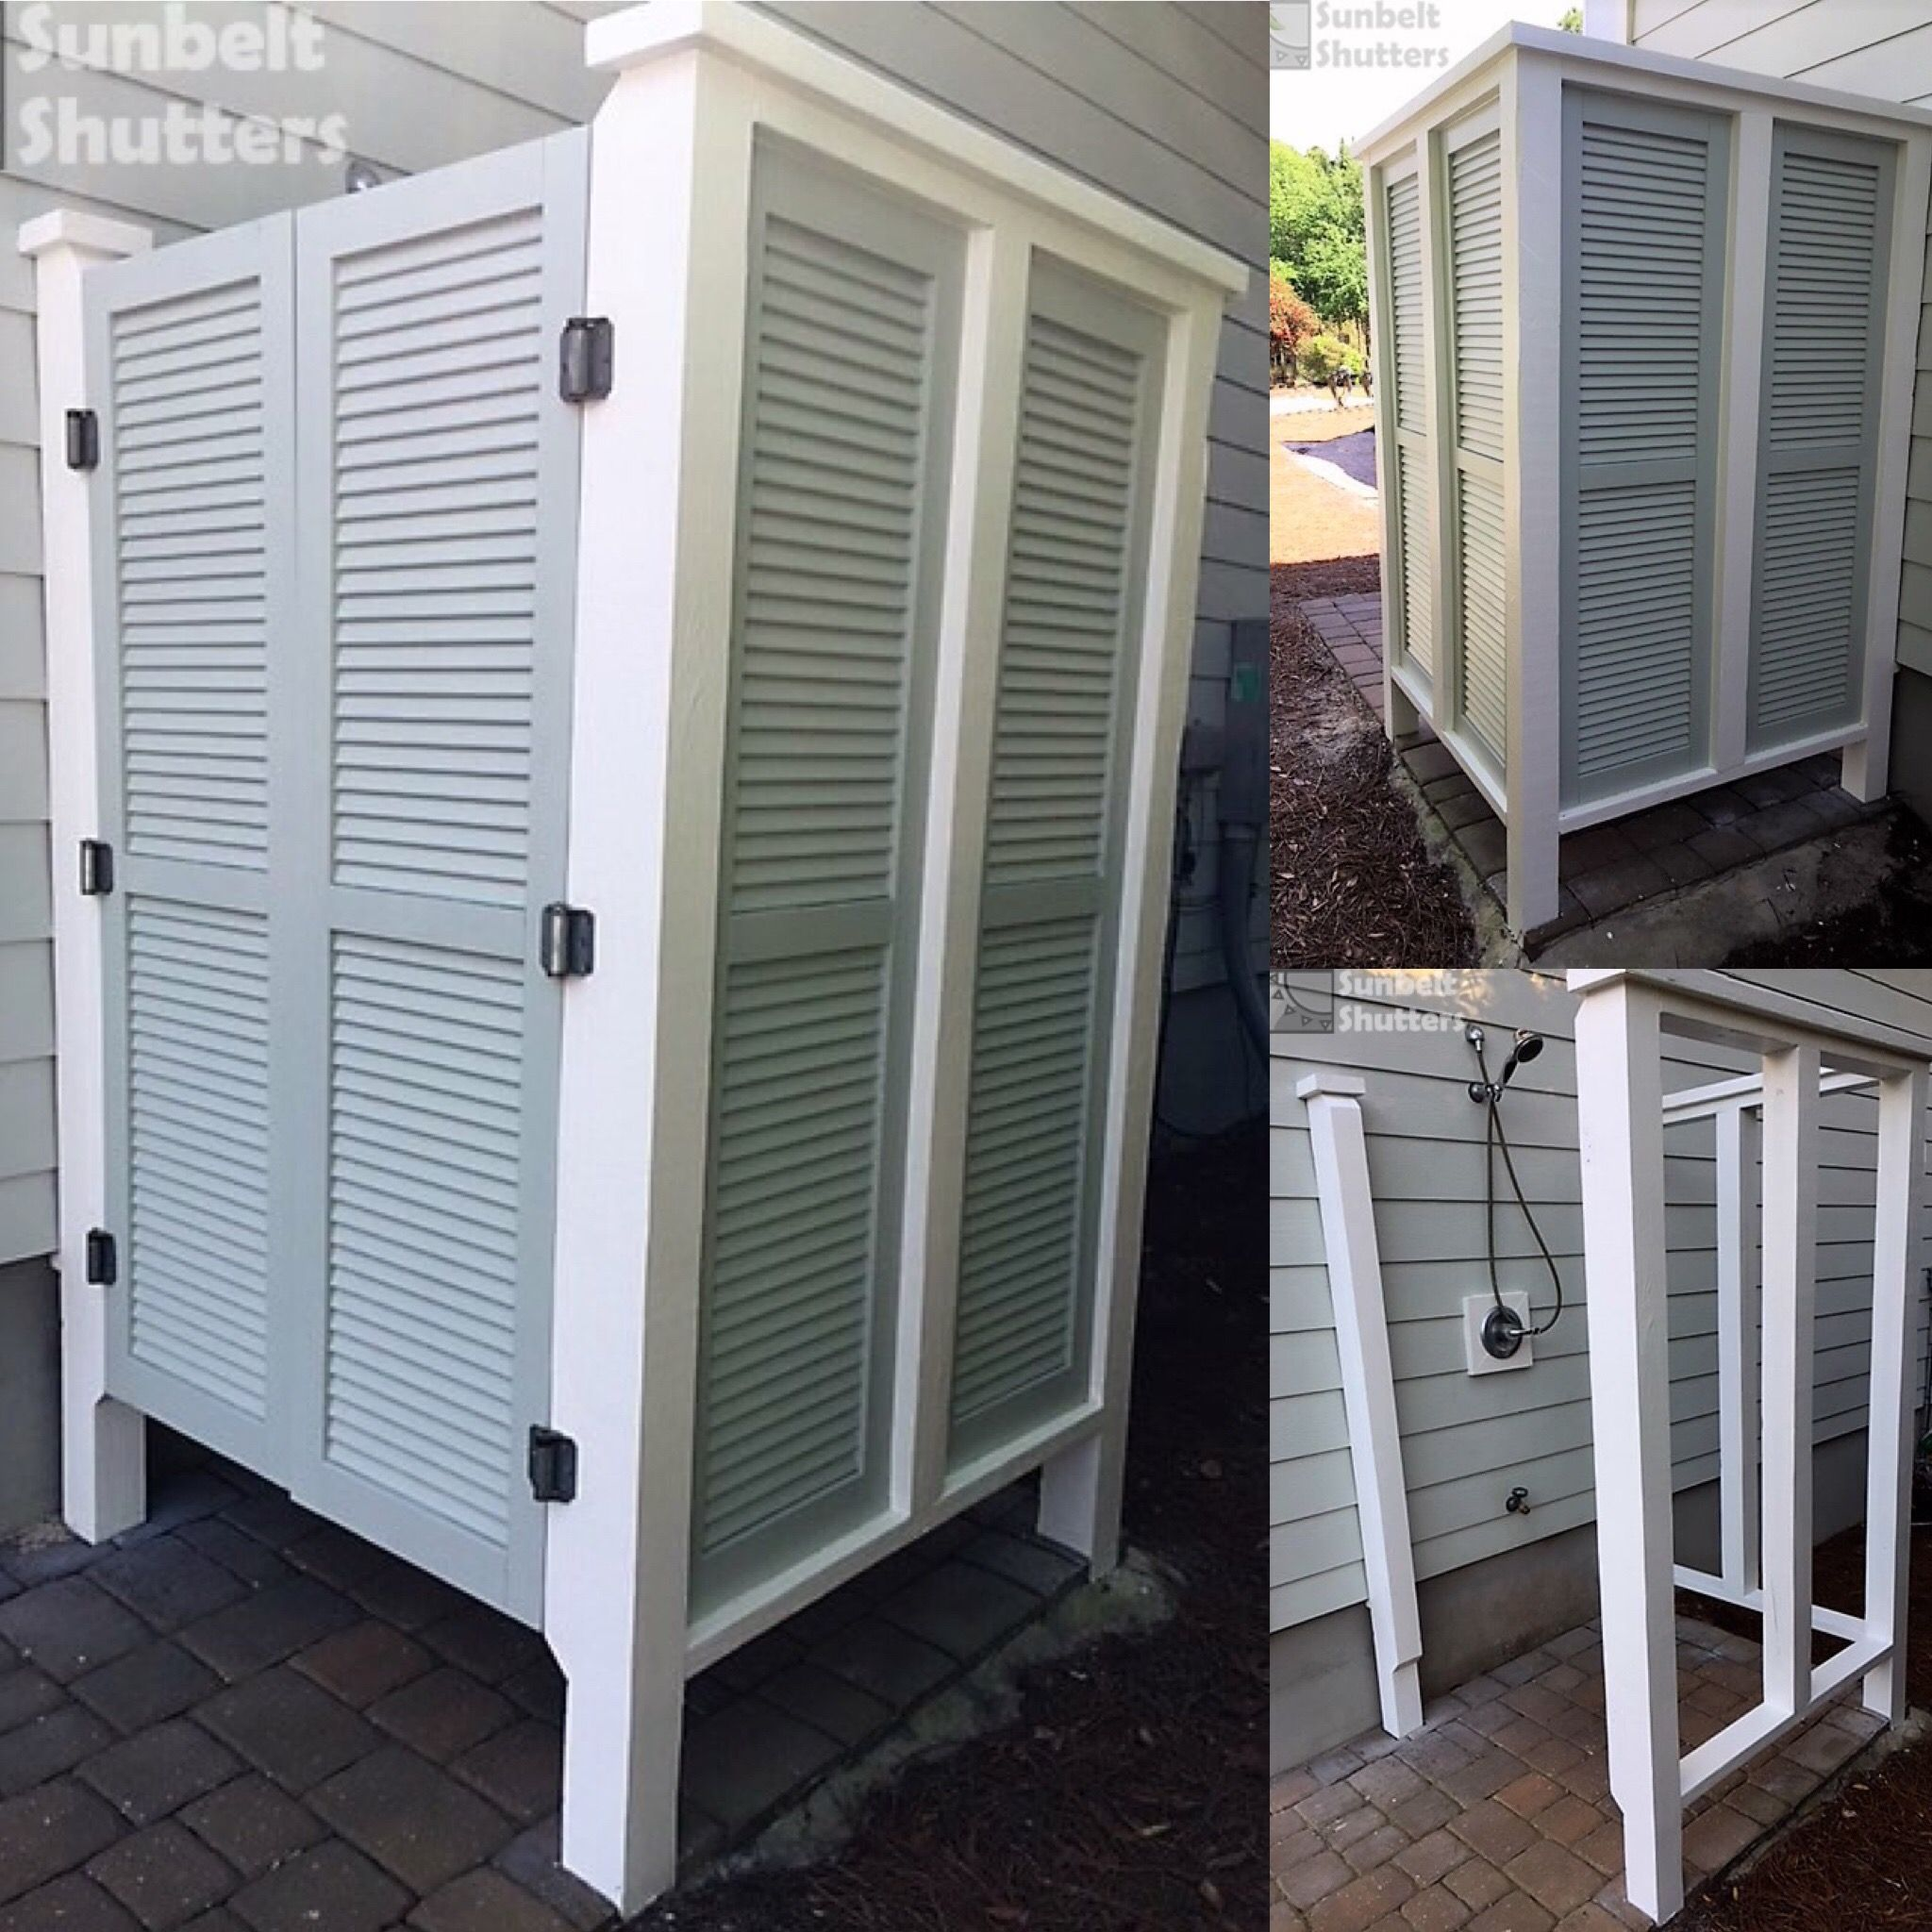 Build An Outdoor Shower For Beach House Or Cabin This Customer Used Sunbelt Shutters Composite Louvereds Wit Outdoor Shower Louvered Shutters Window In Shower